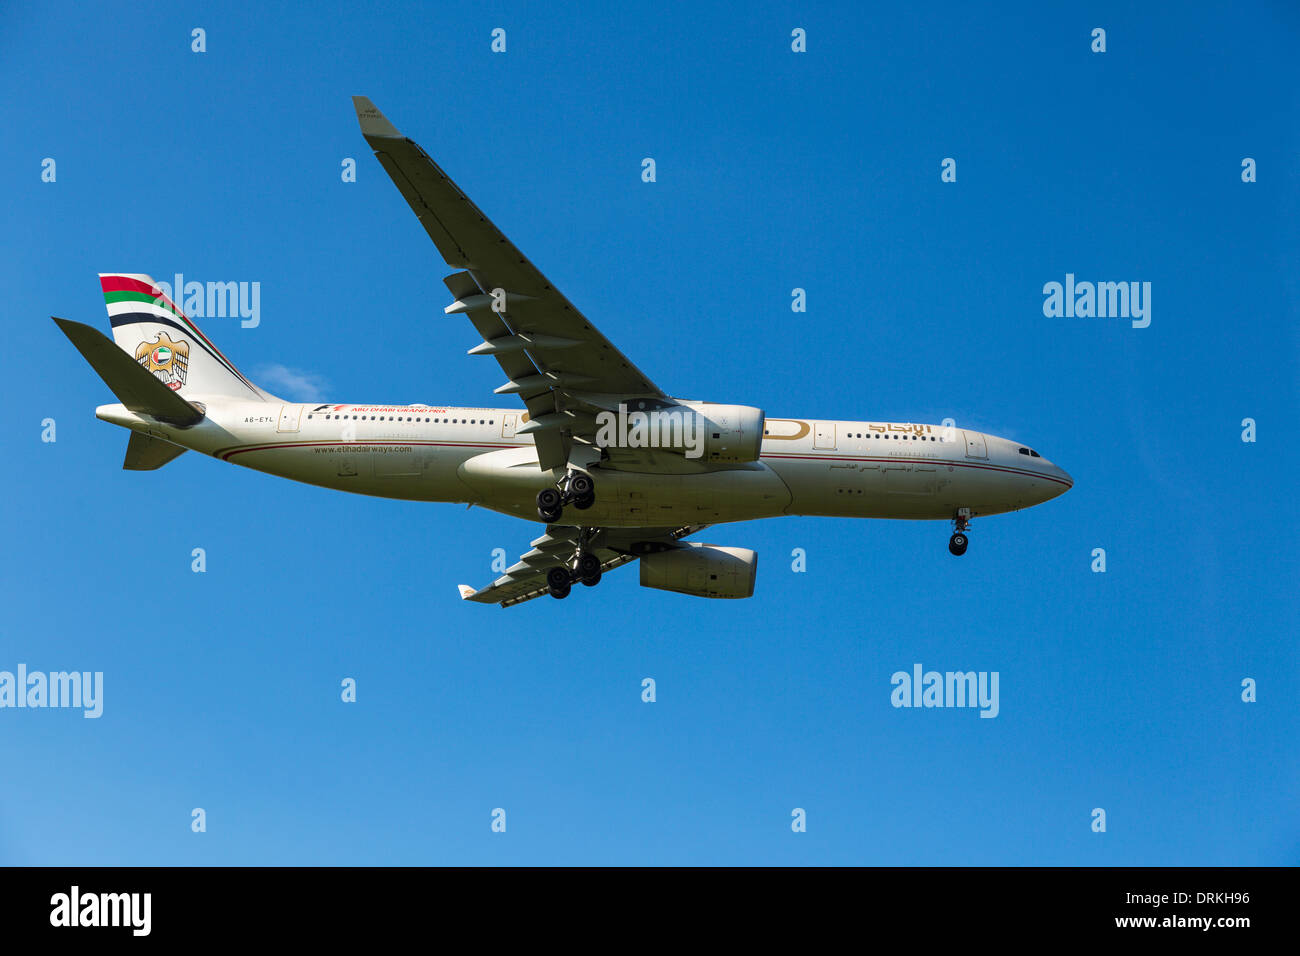 Etihad Airways Airbus A330 to land - Stock Image